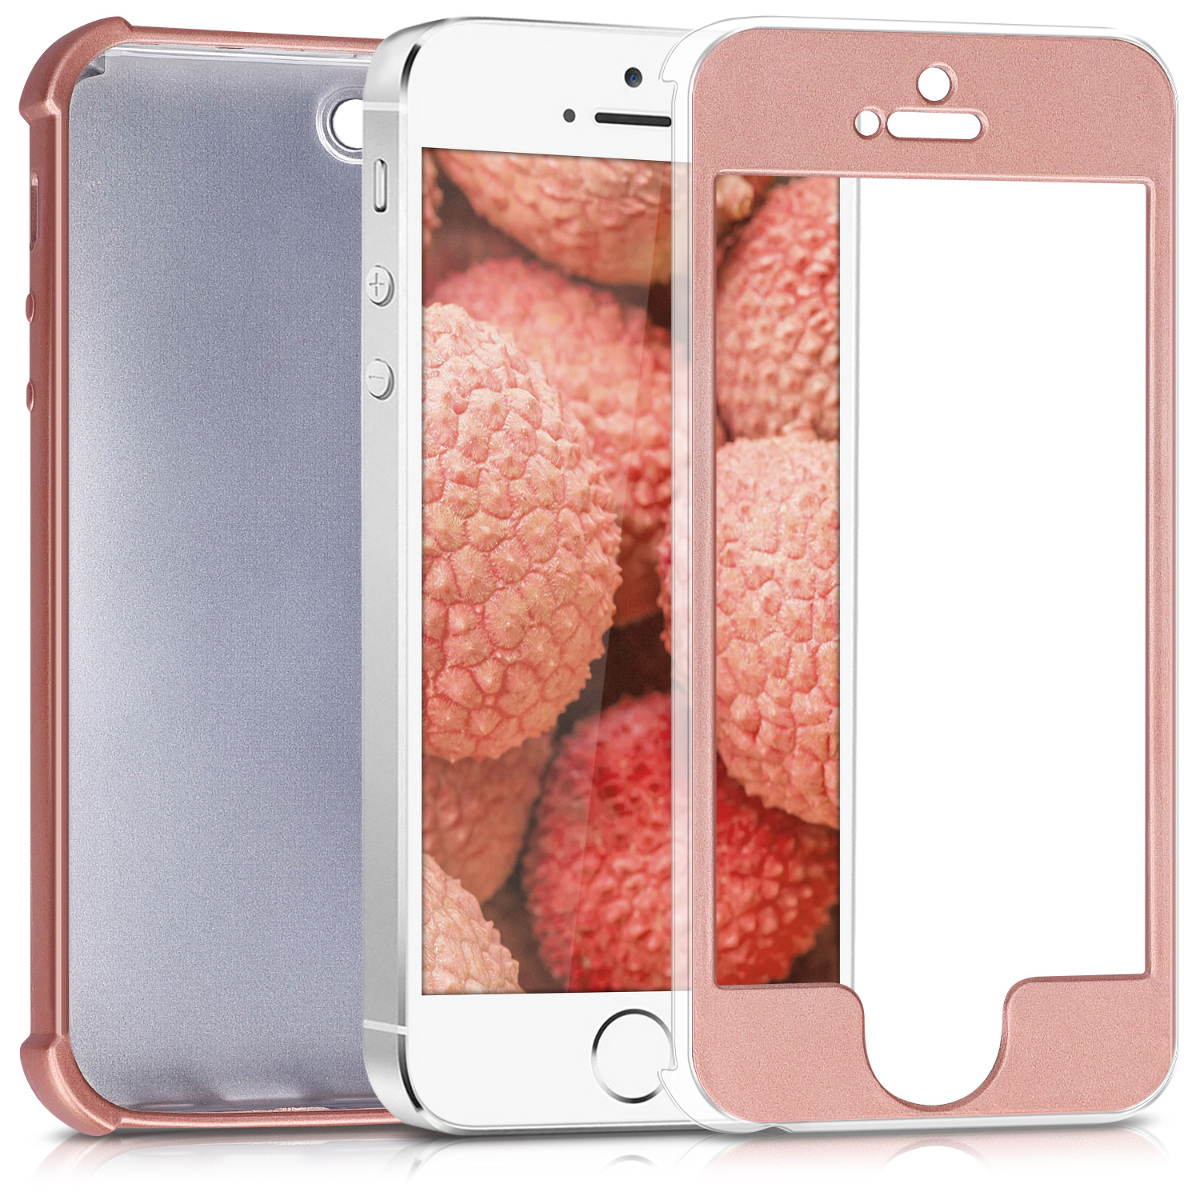 KW Θήκη Σιλικόνης Full Body iPhone SE / 5S / 5 - Metallic Rose Gold - (42648.31)